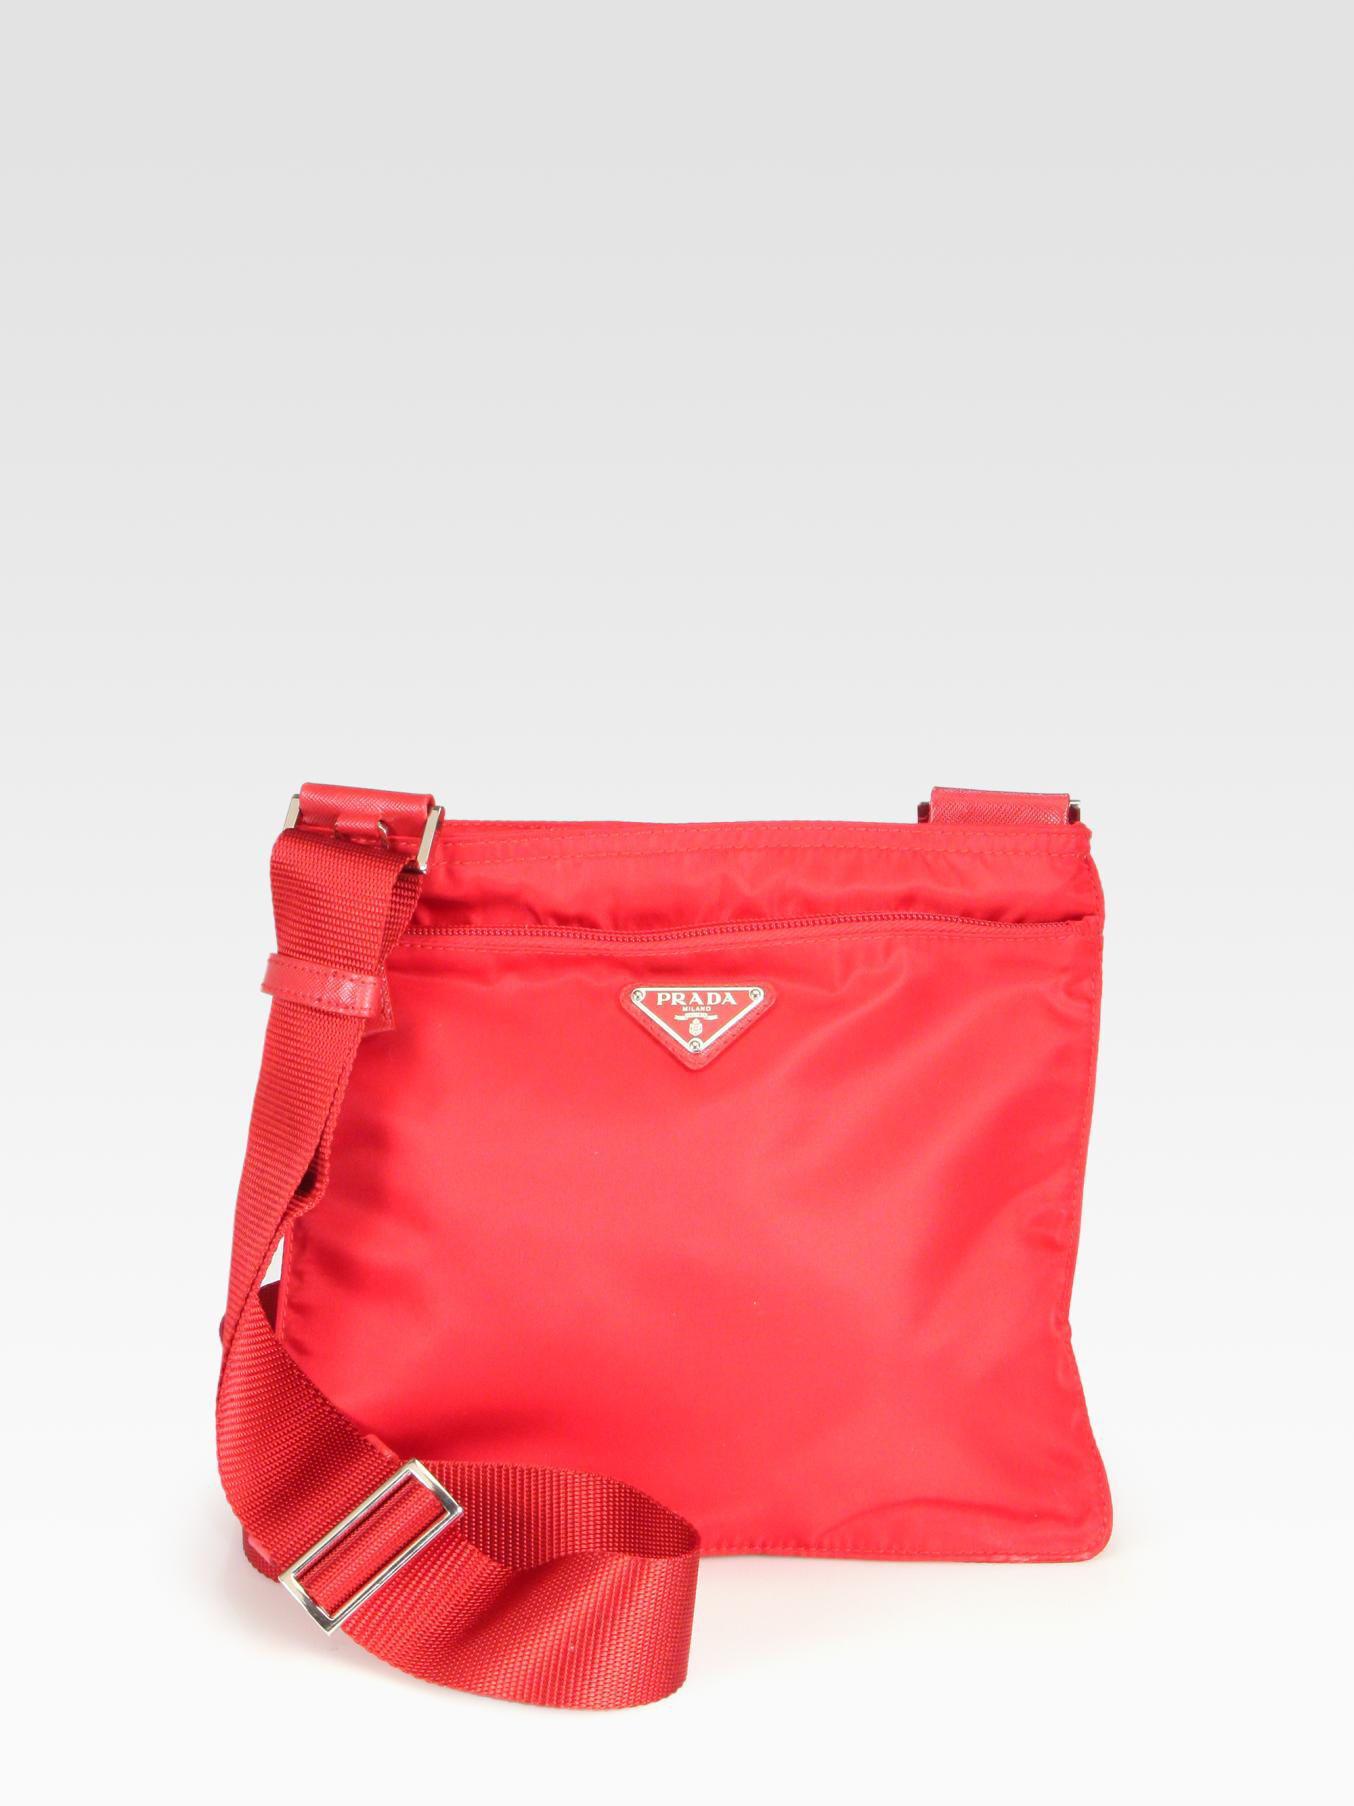 prada continental zip wallet - red prada bag, authentic prada handbags for less